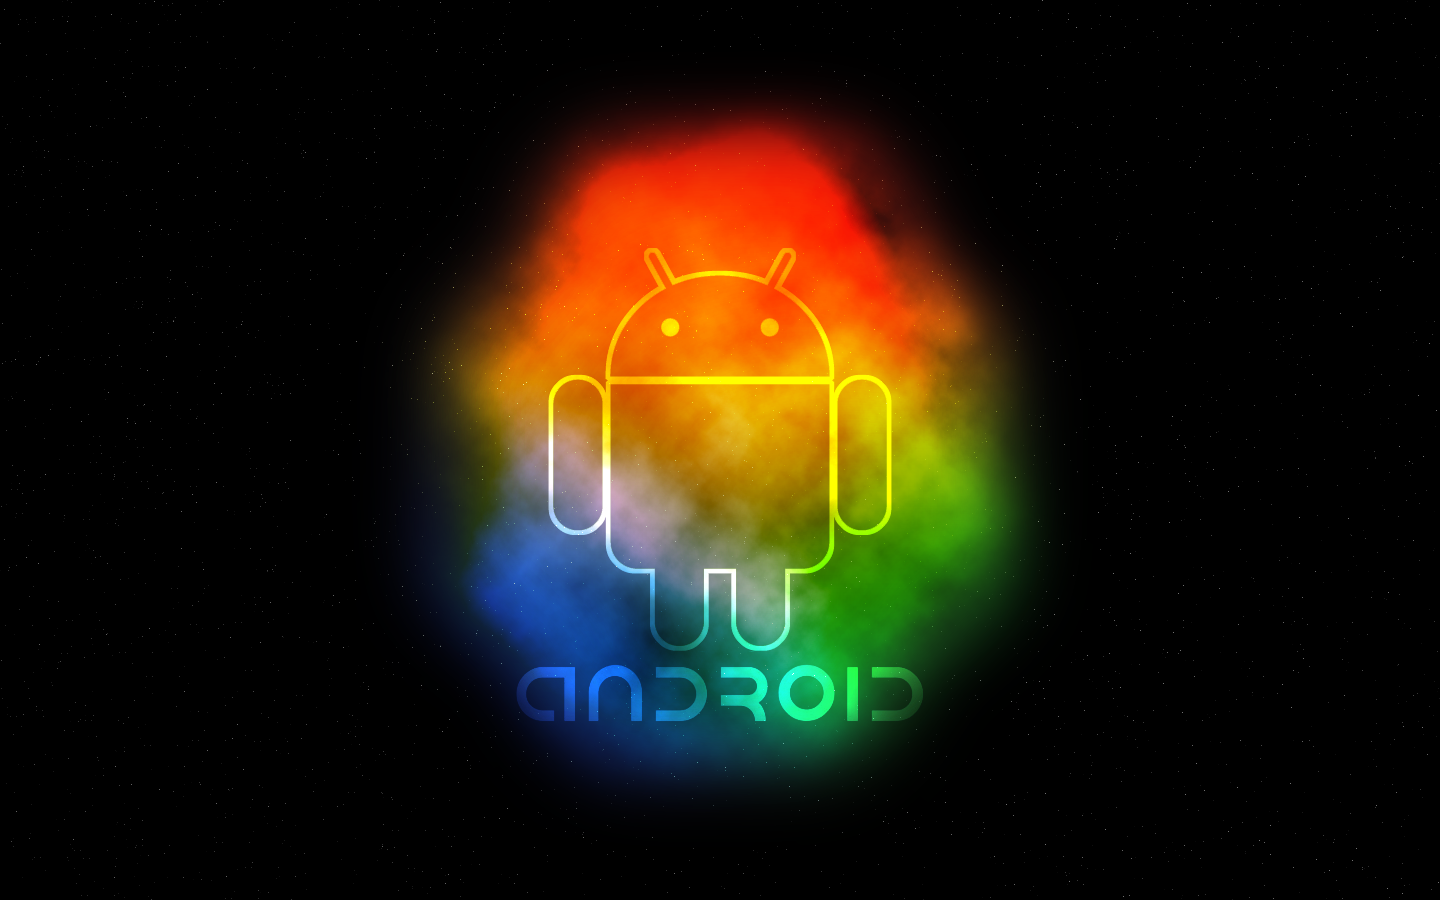 Cool Android Wallpapers - WallpaperSafari